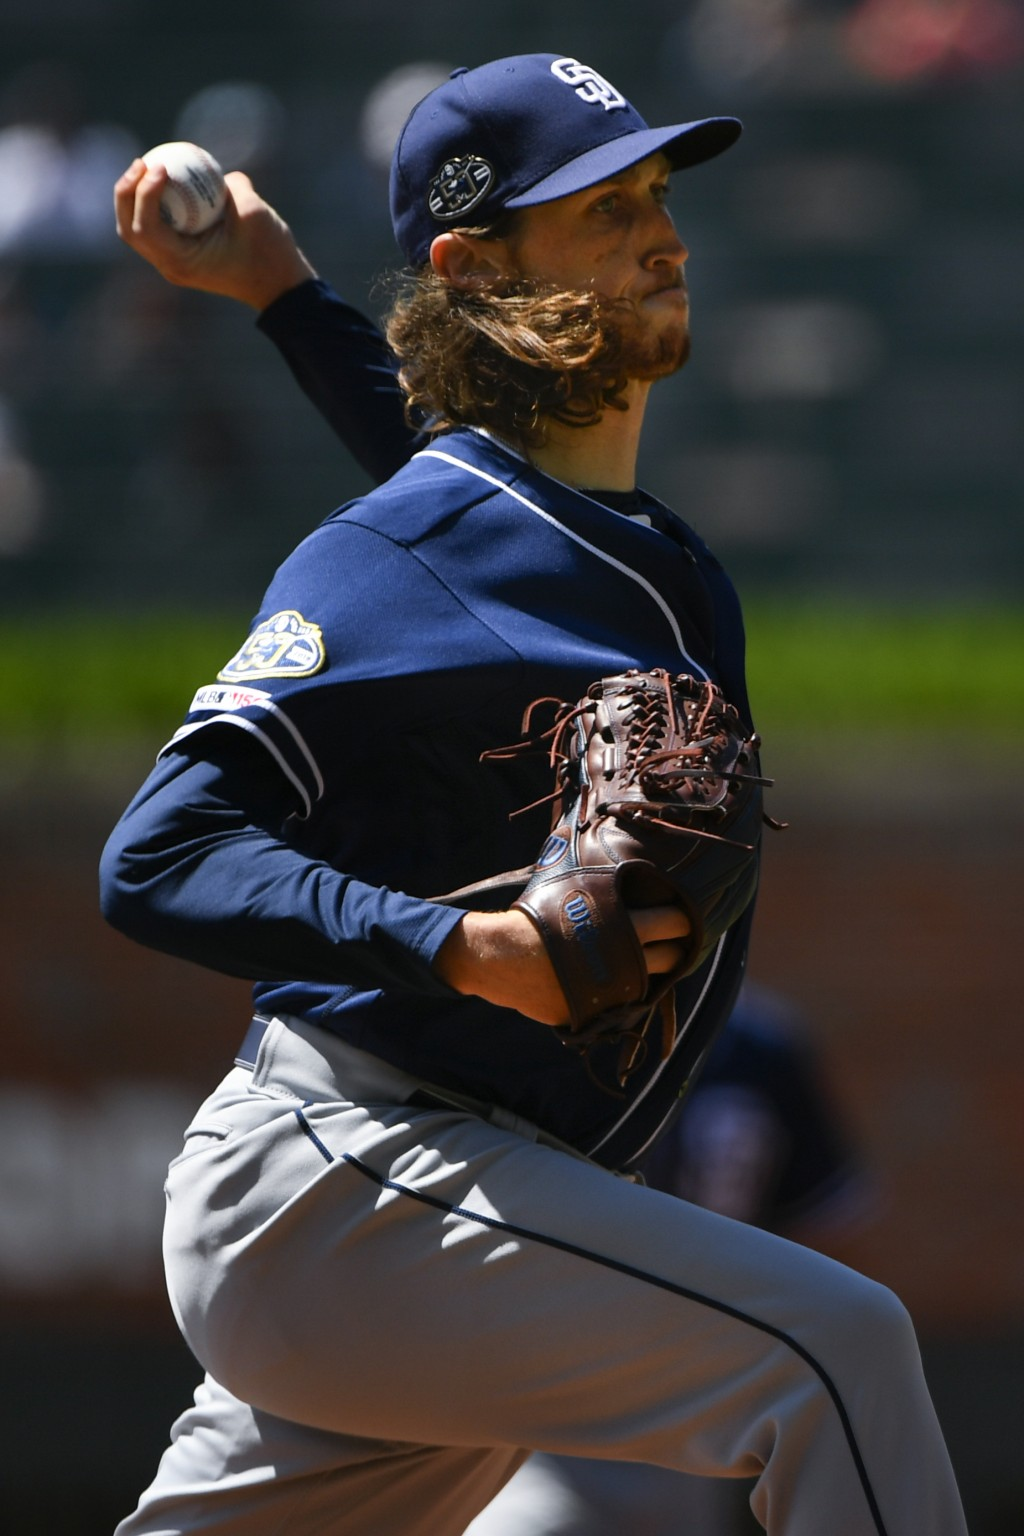 San Diego Padres' Matt Strahm pitches against the Atlanta Braves during the first inning of a baseball game Thursday, May 2, 2019 in Atlanta. (AP Phot